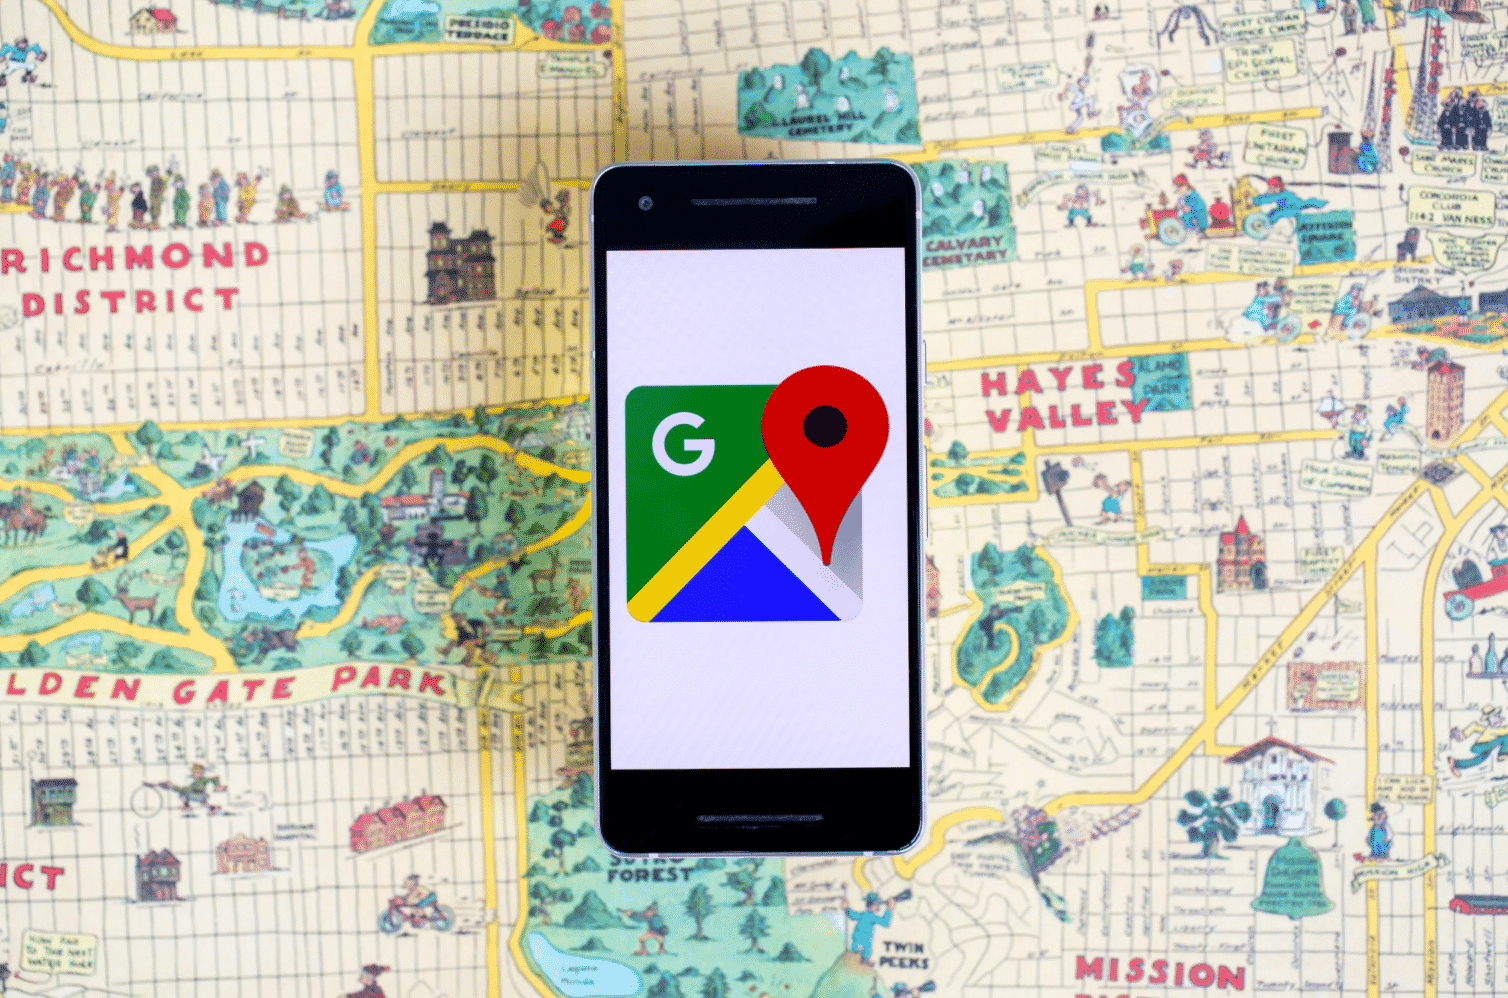 Google Maps adds COVID-19 alerts on public transit and travel information